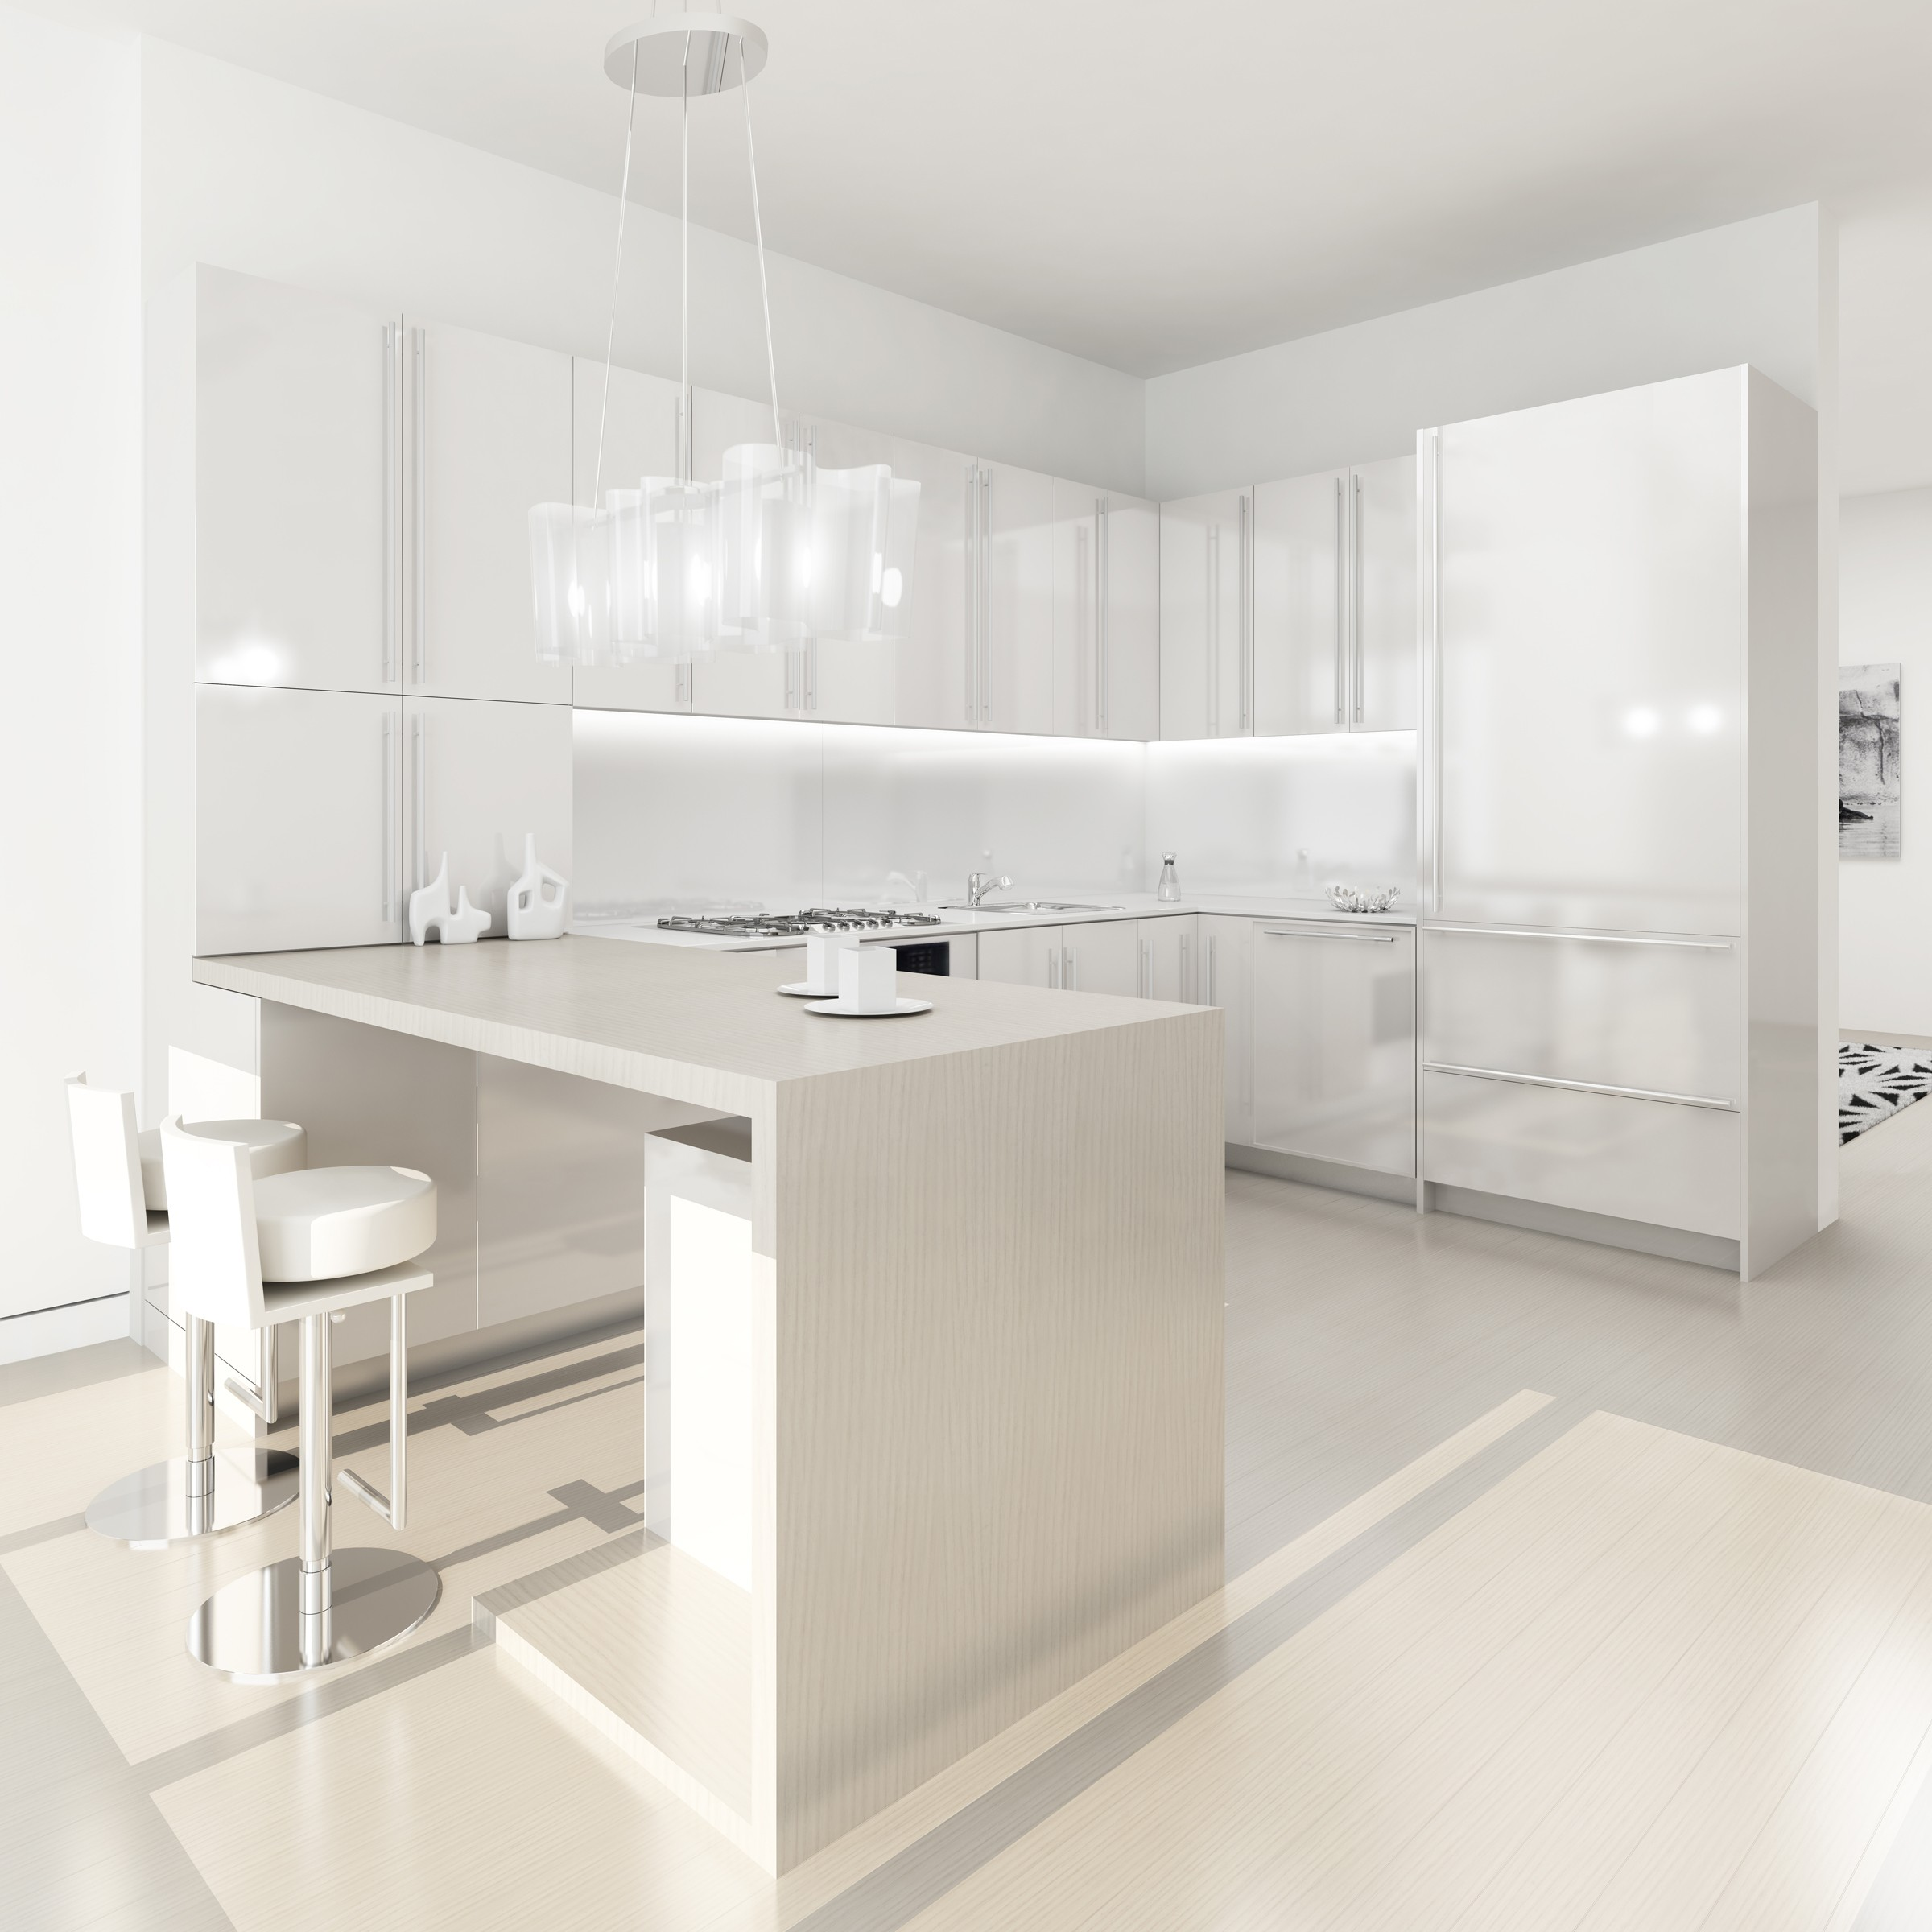 White kitchens All white kitchen ideas